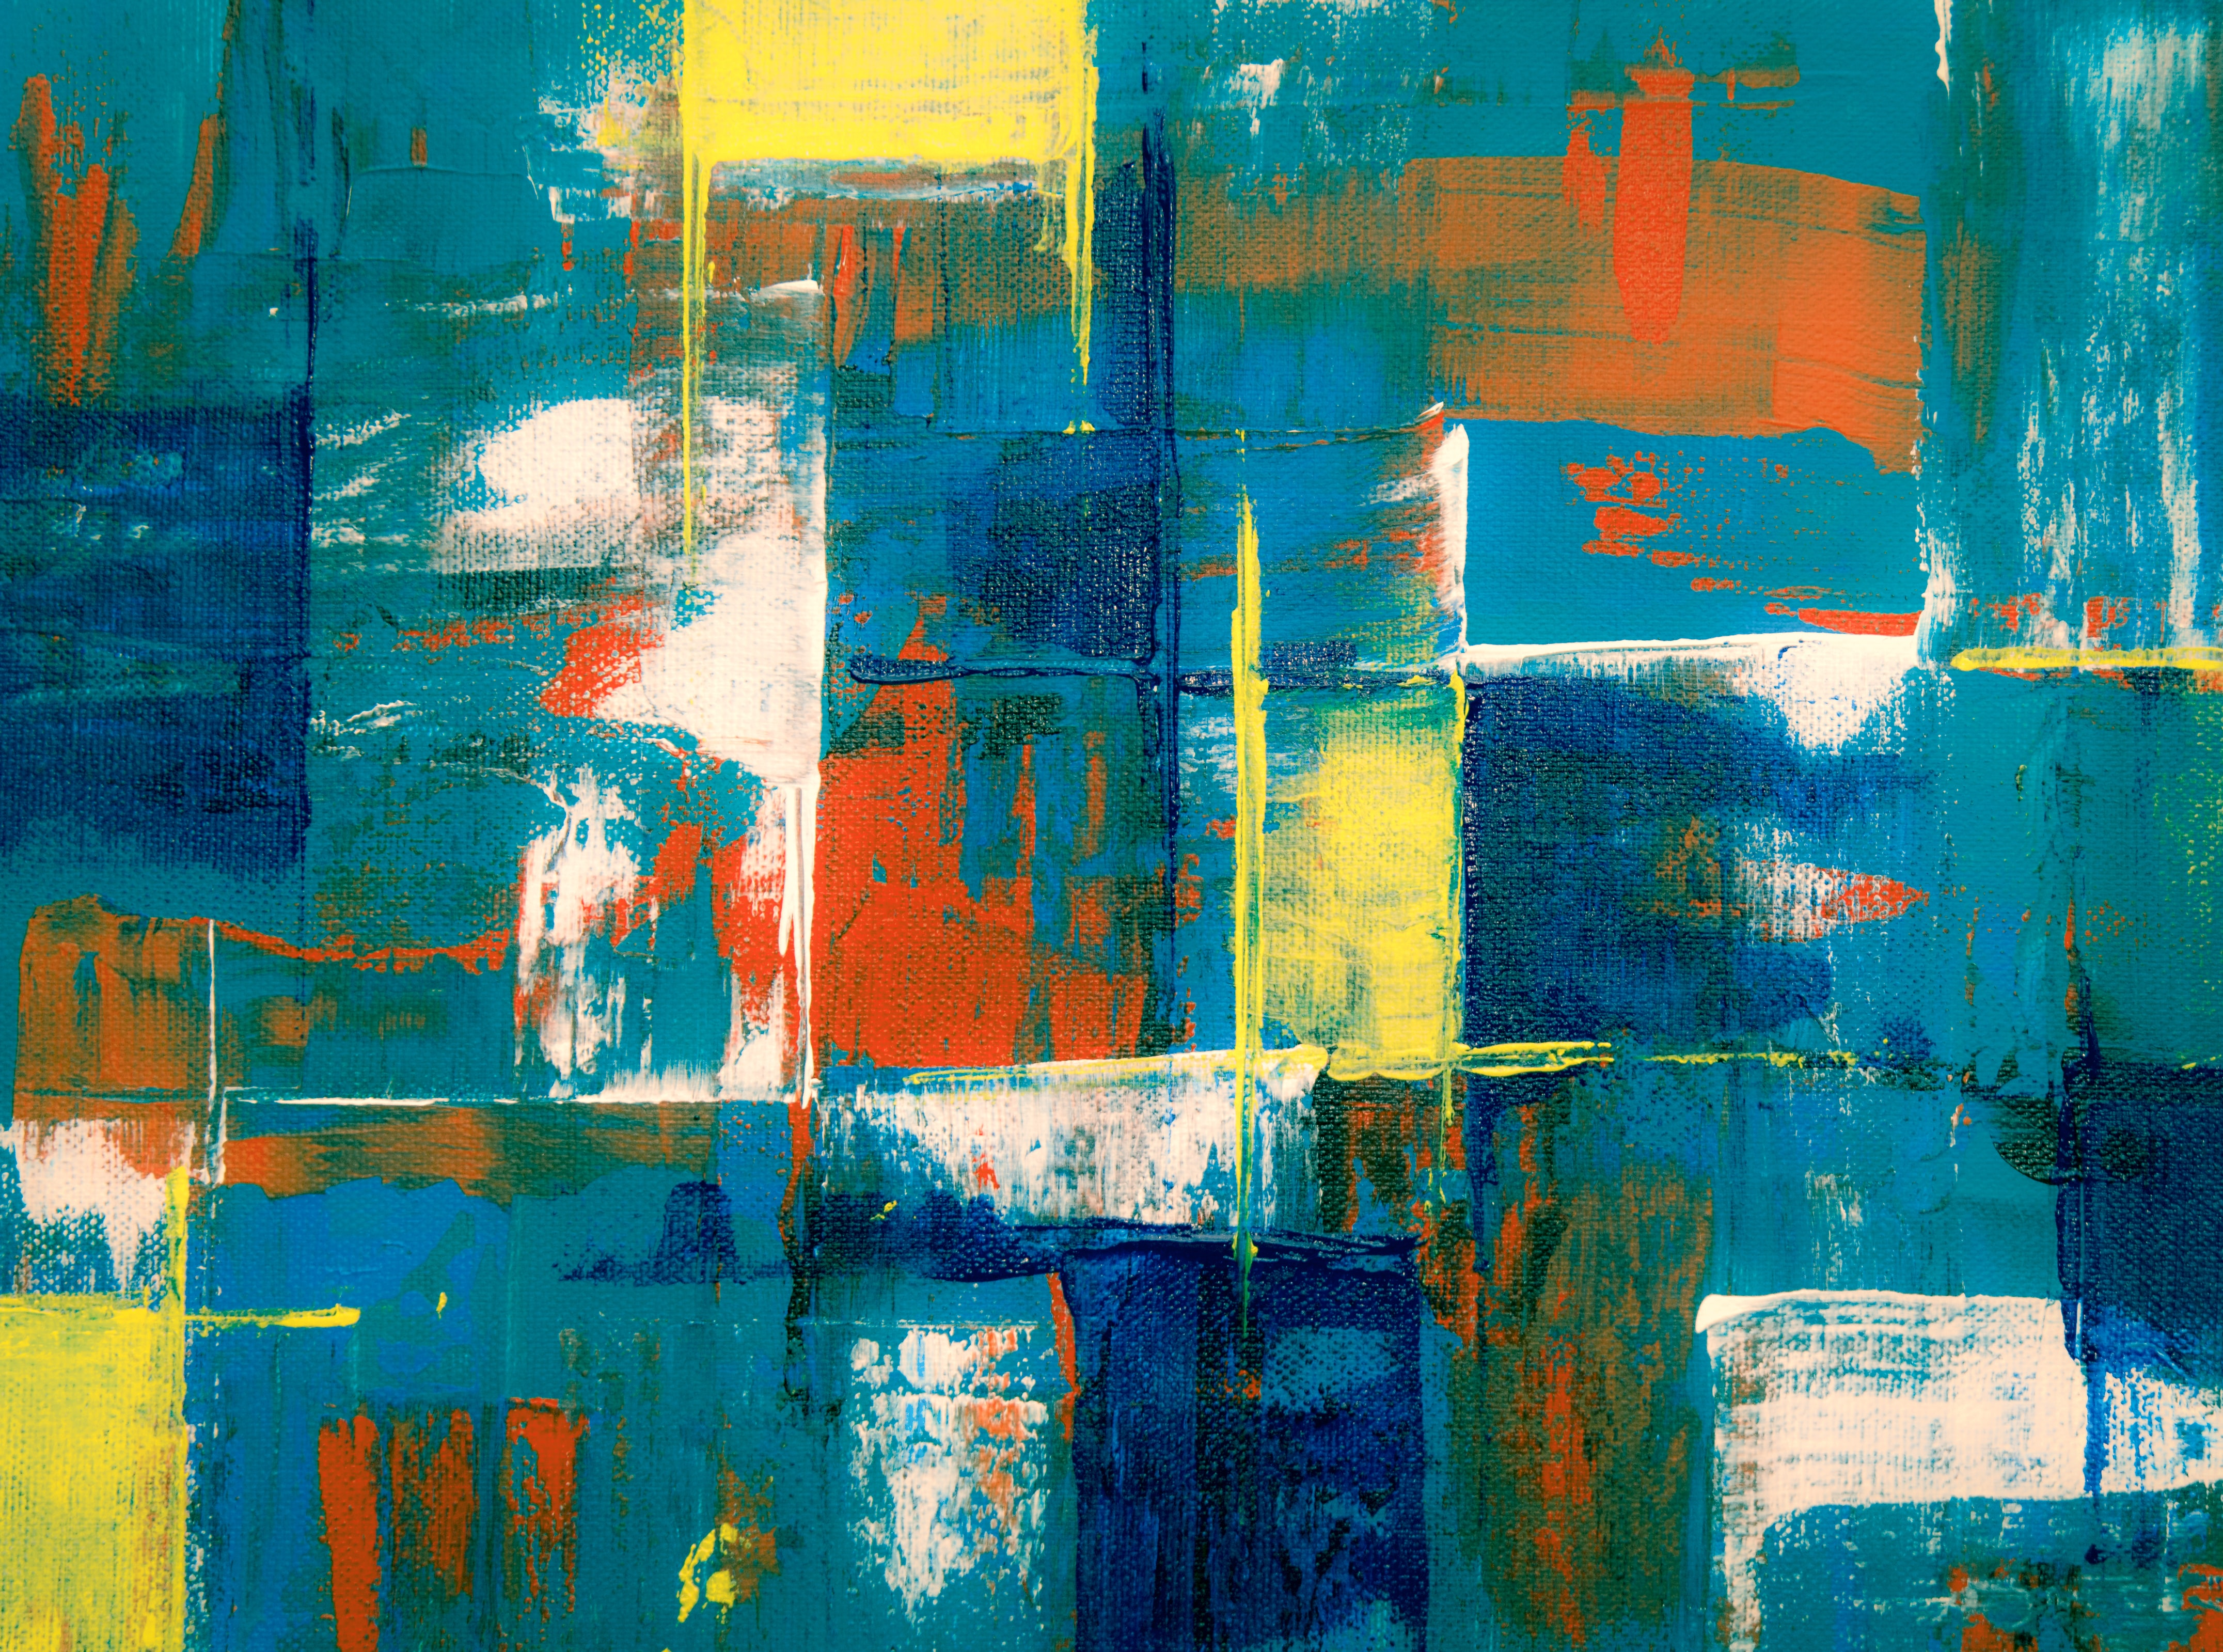 teal and yellow abstract painting